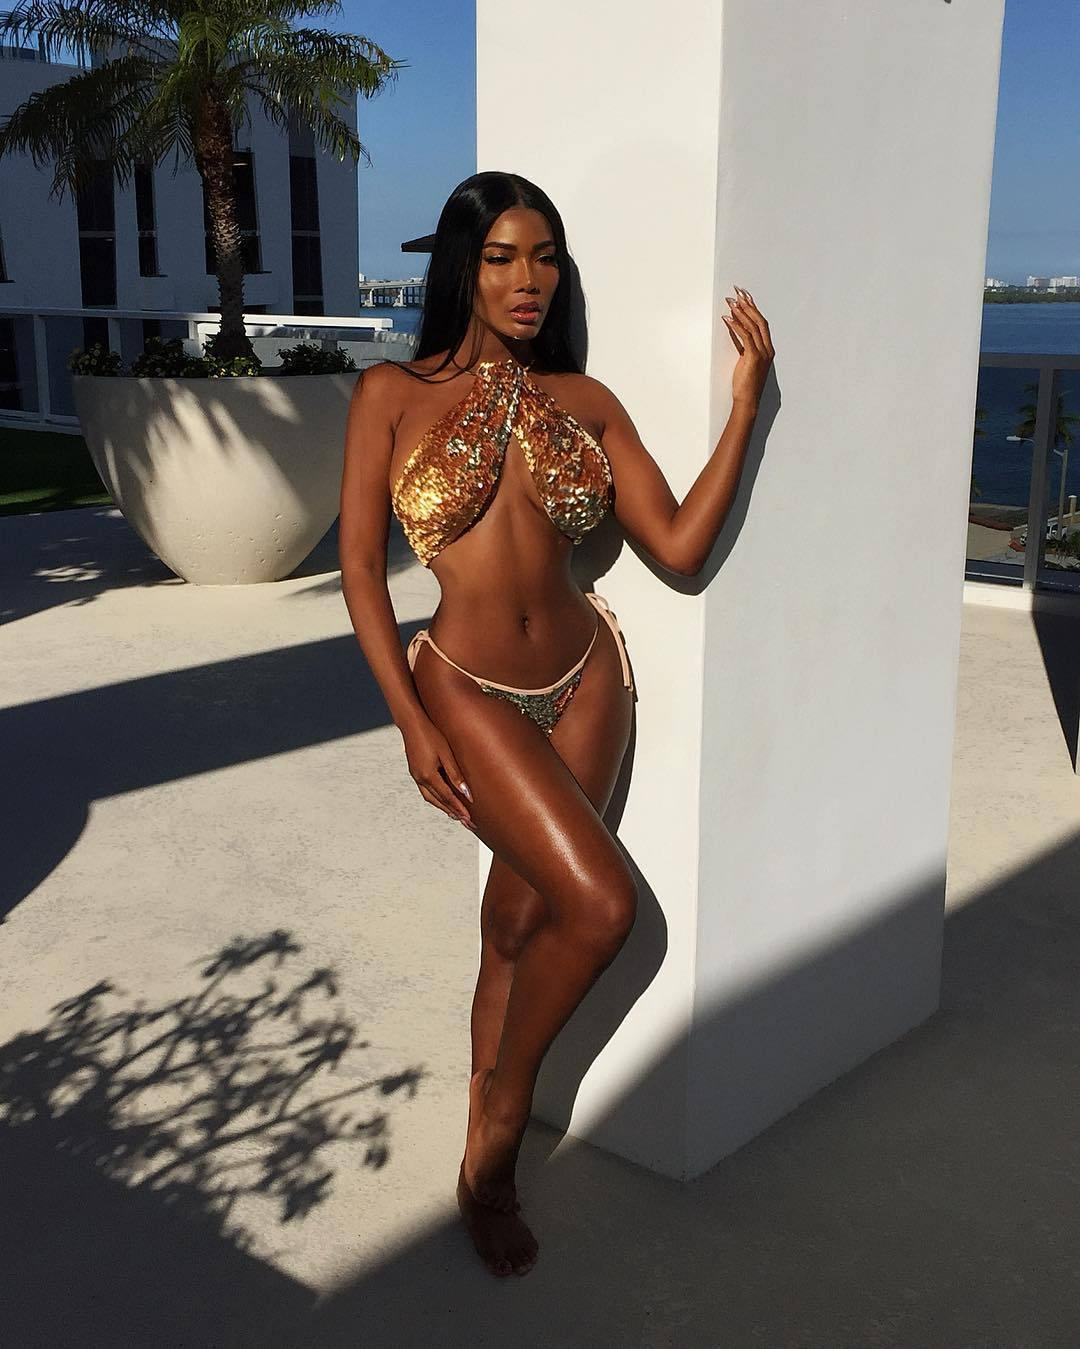 Monifa Jansen – Beautiful Boobs And Ass In Hot Instagram Pictures 0047